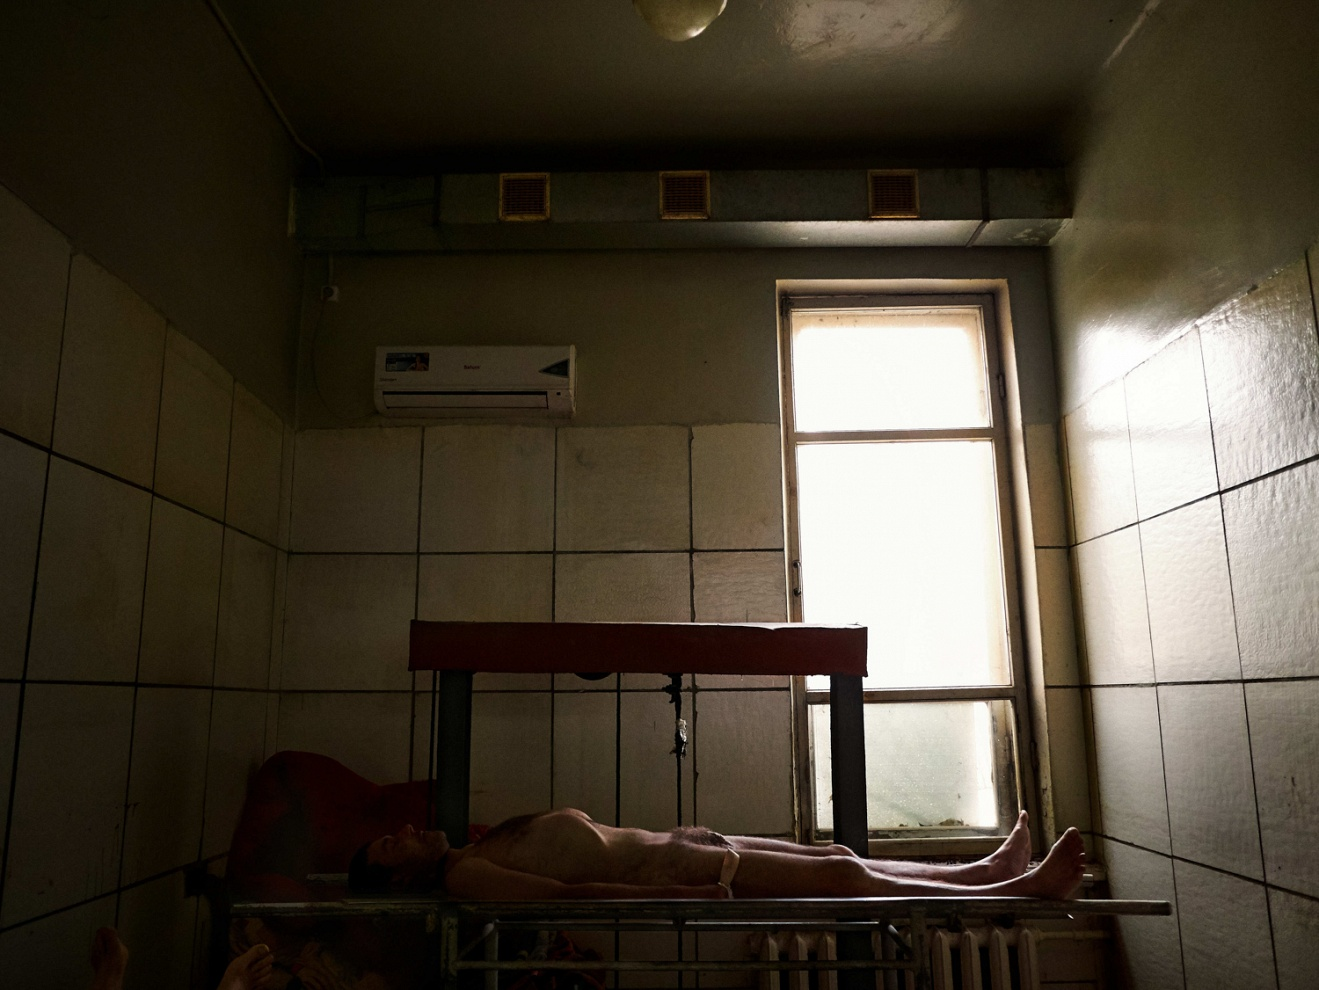 Ukraine; Donbass region; Donetsk; 2014